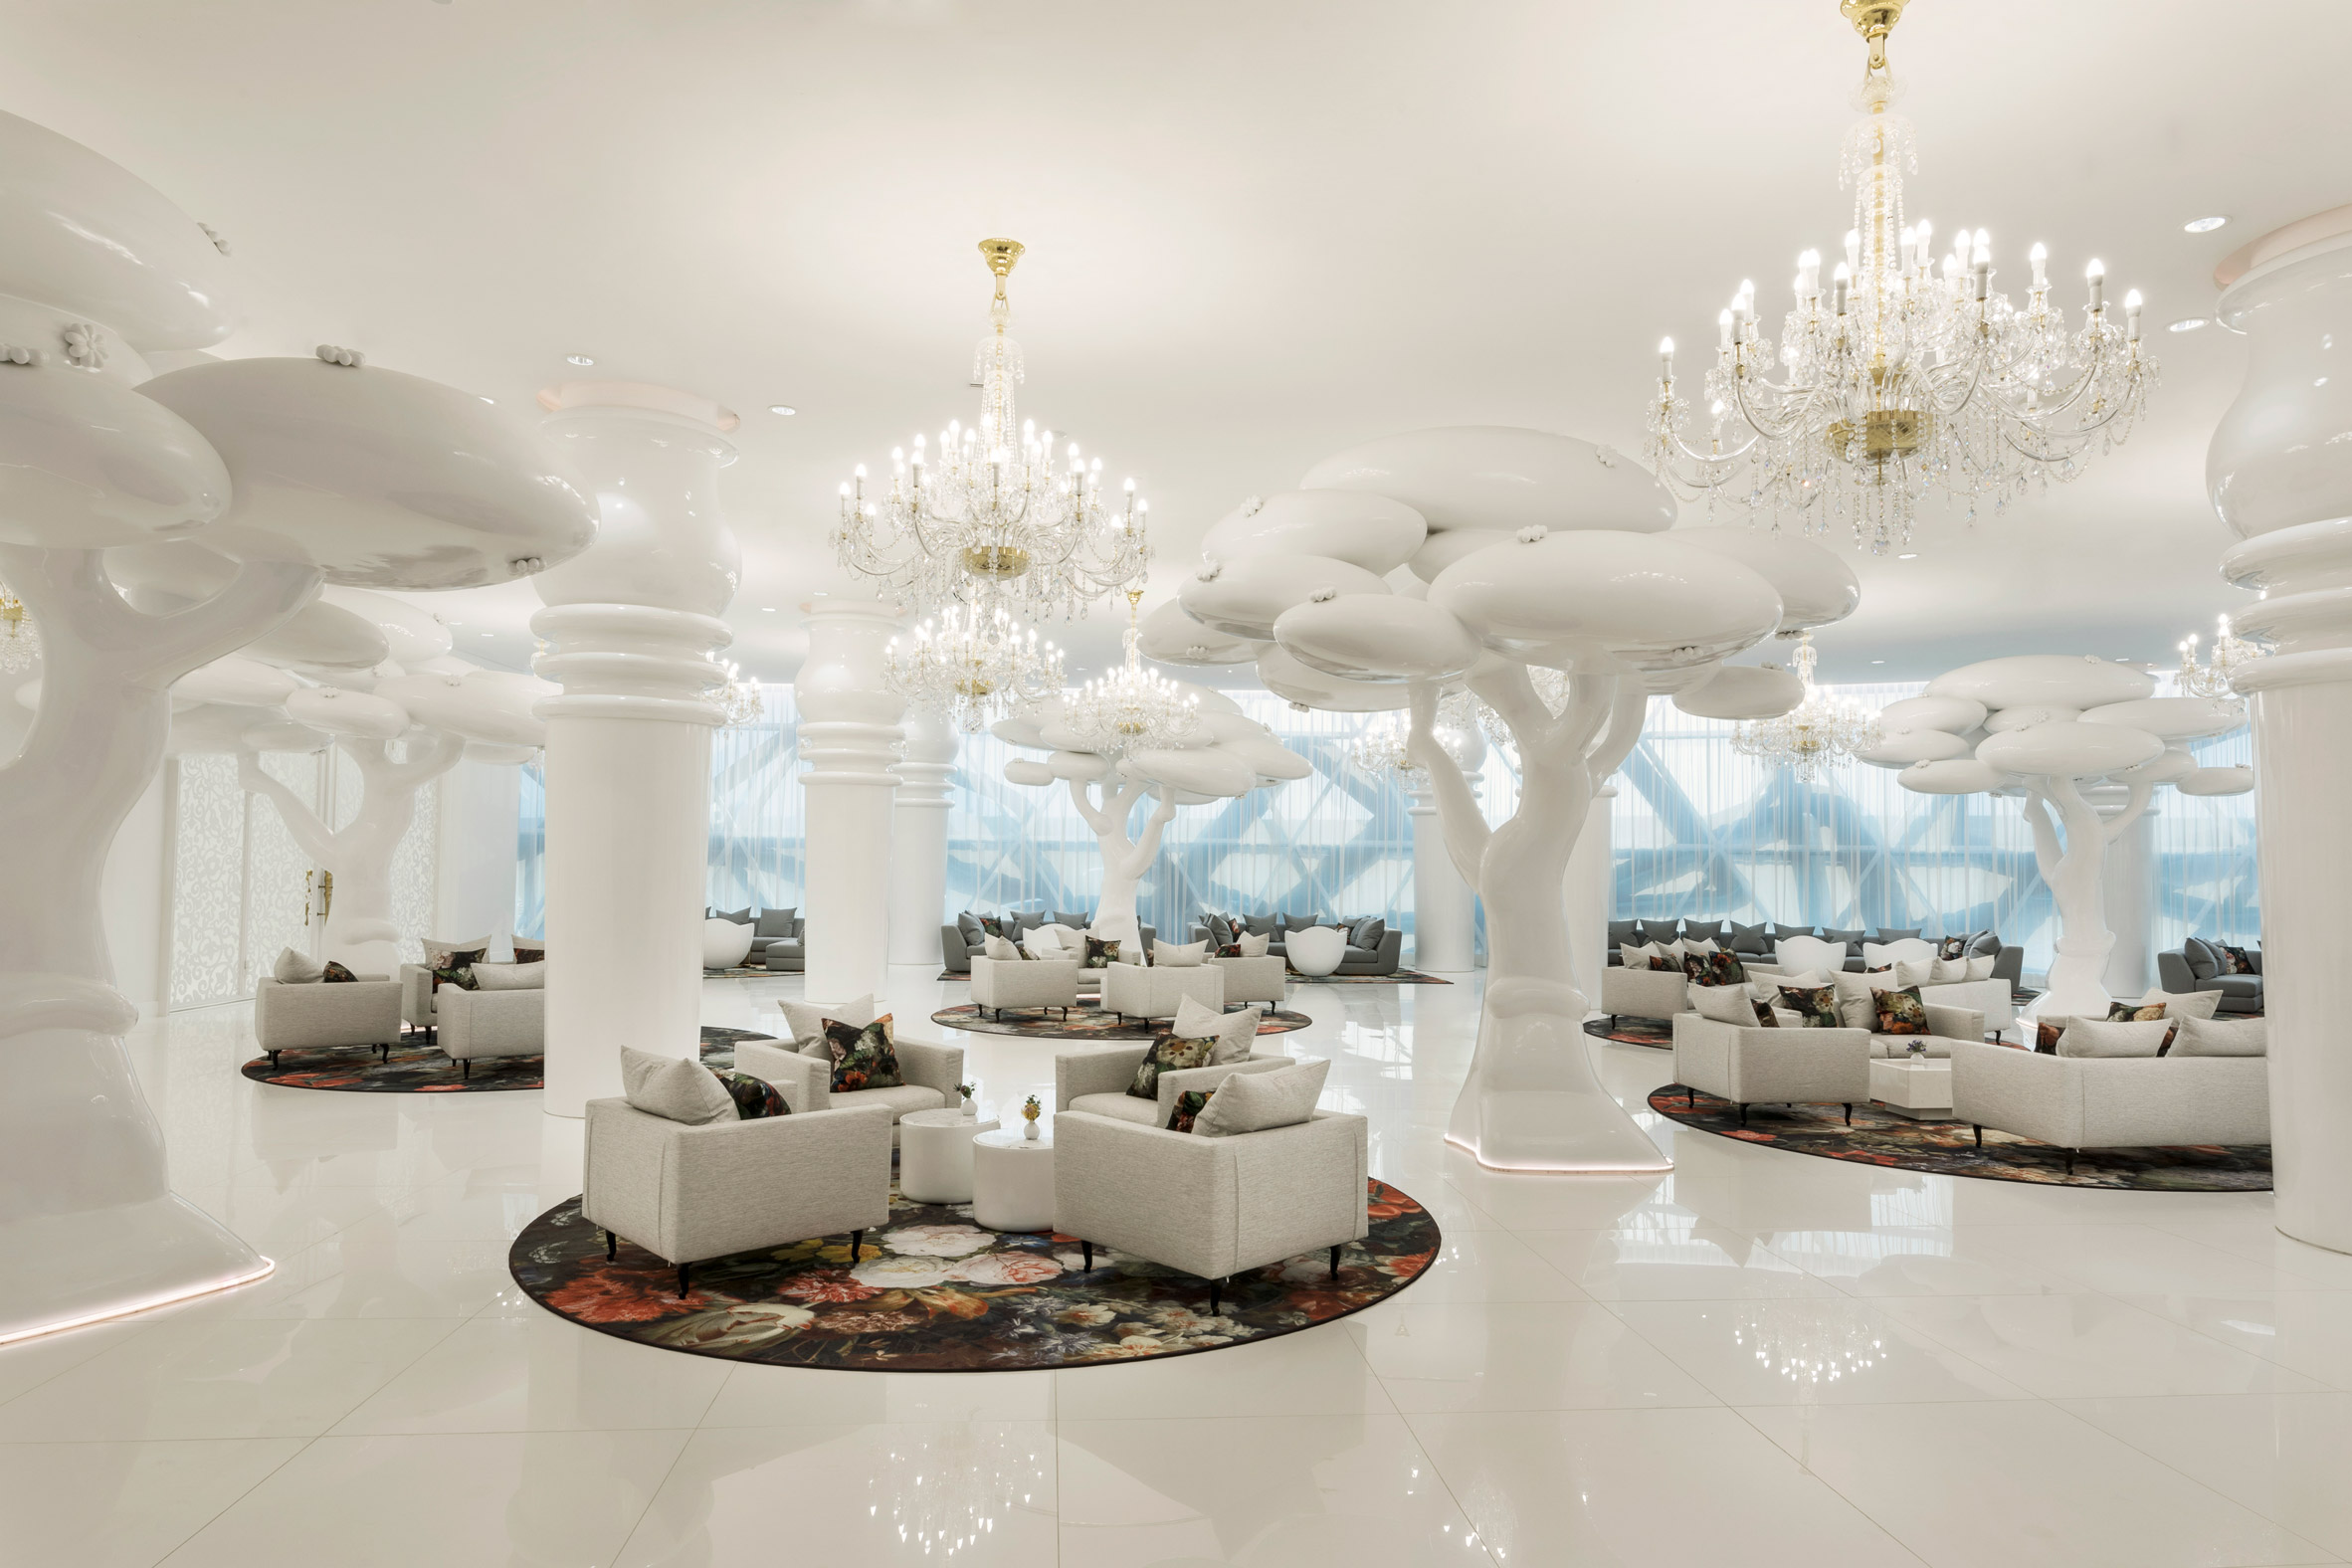 Golden eggs, mosaics, Moooi Carpets and an overcalled spiral staircase feature at the  Mondrian Hotel in Doha designed by Marcel Wanders in 2017.